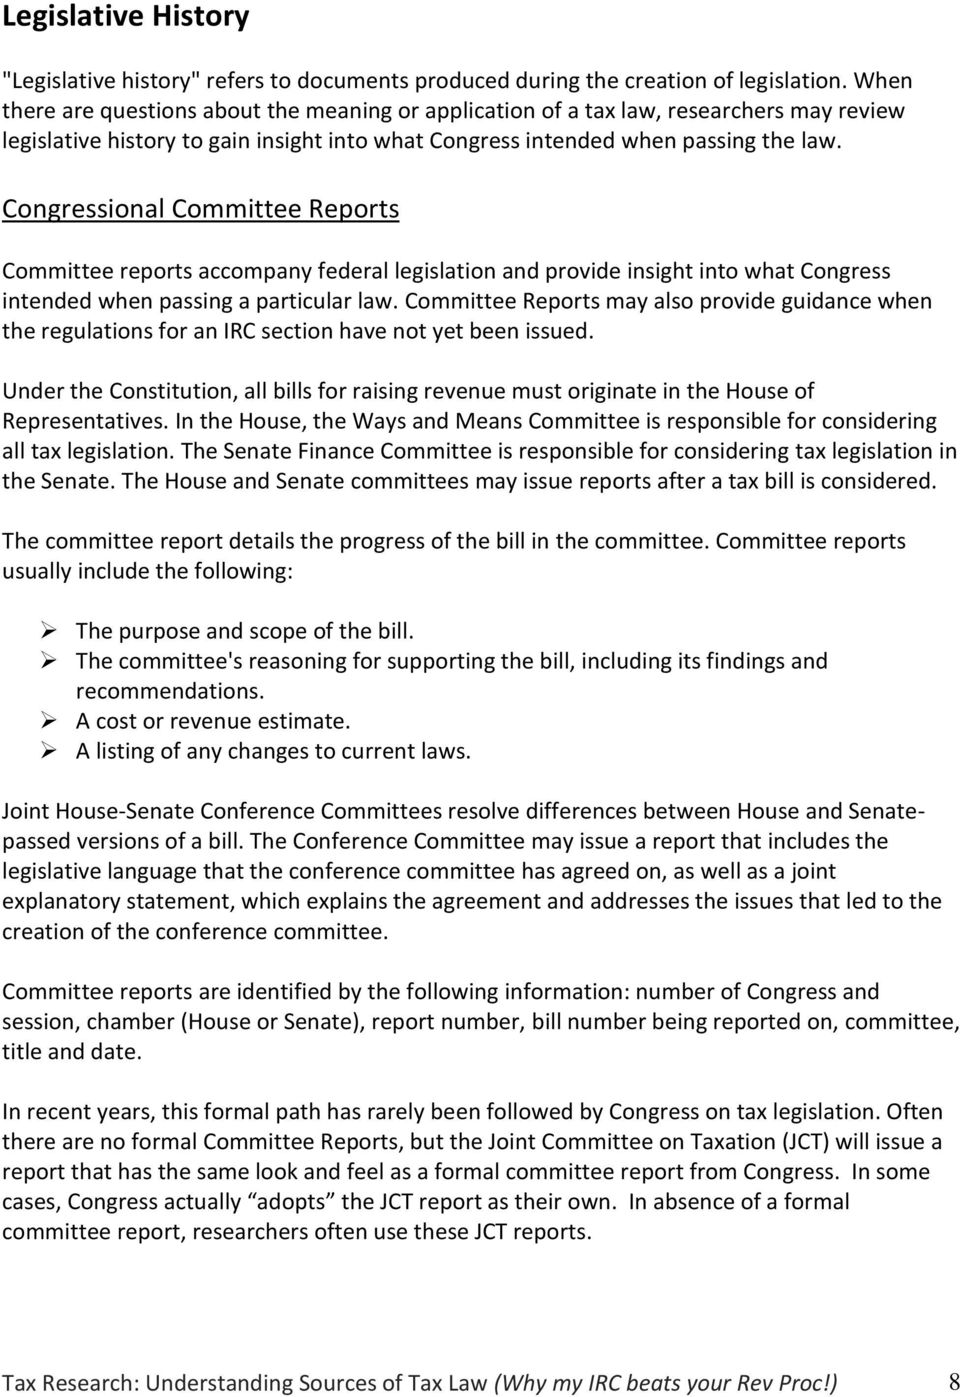 Congressional Committee Reports Committee reports accompany federal legislation and provide insight into what Congress intended when passing a particular law.